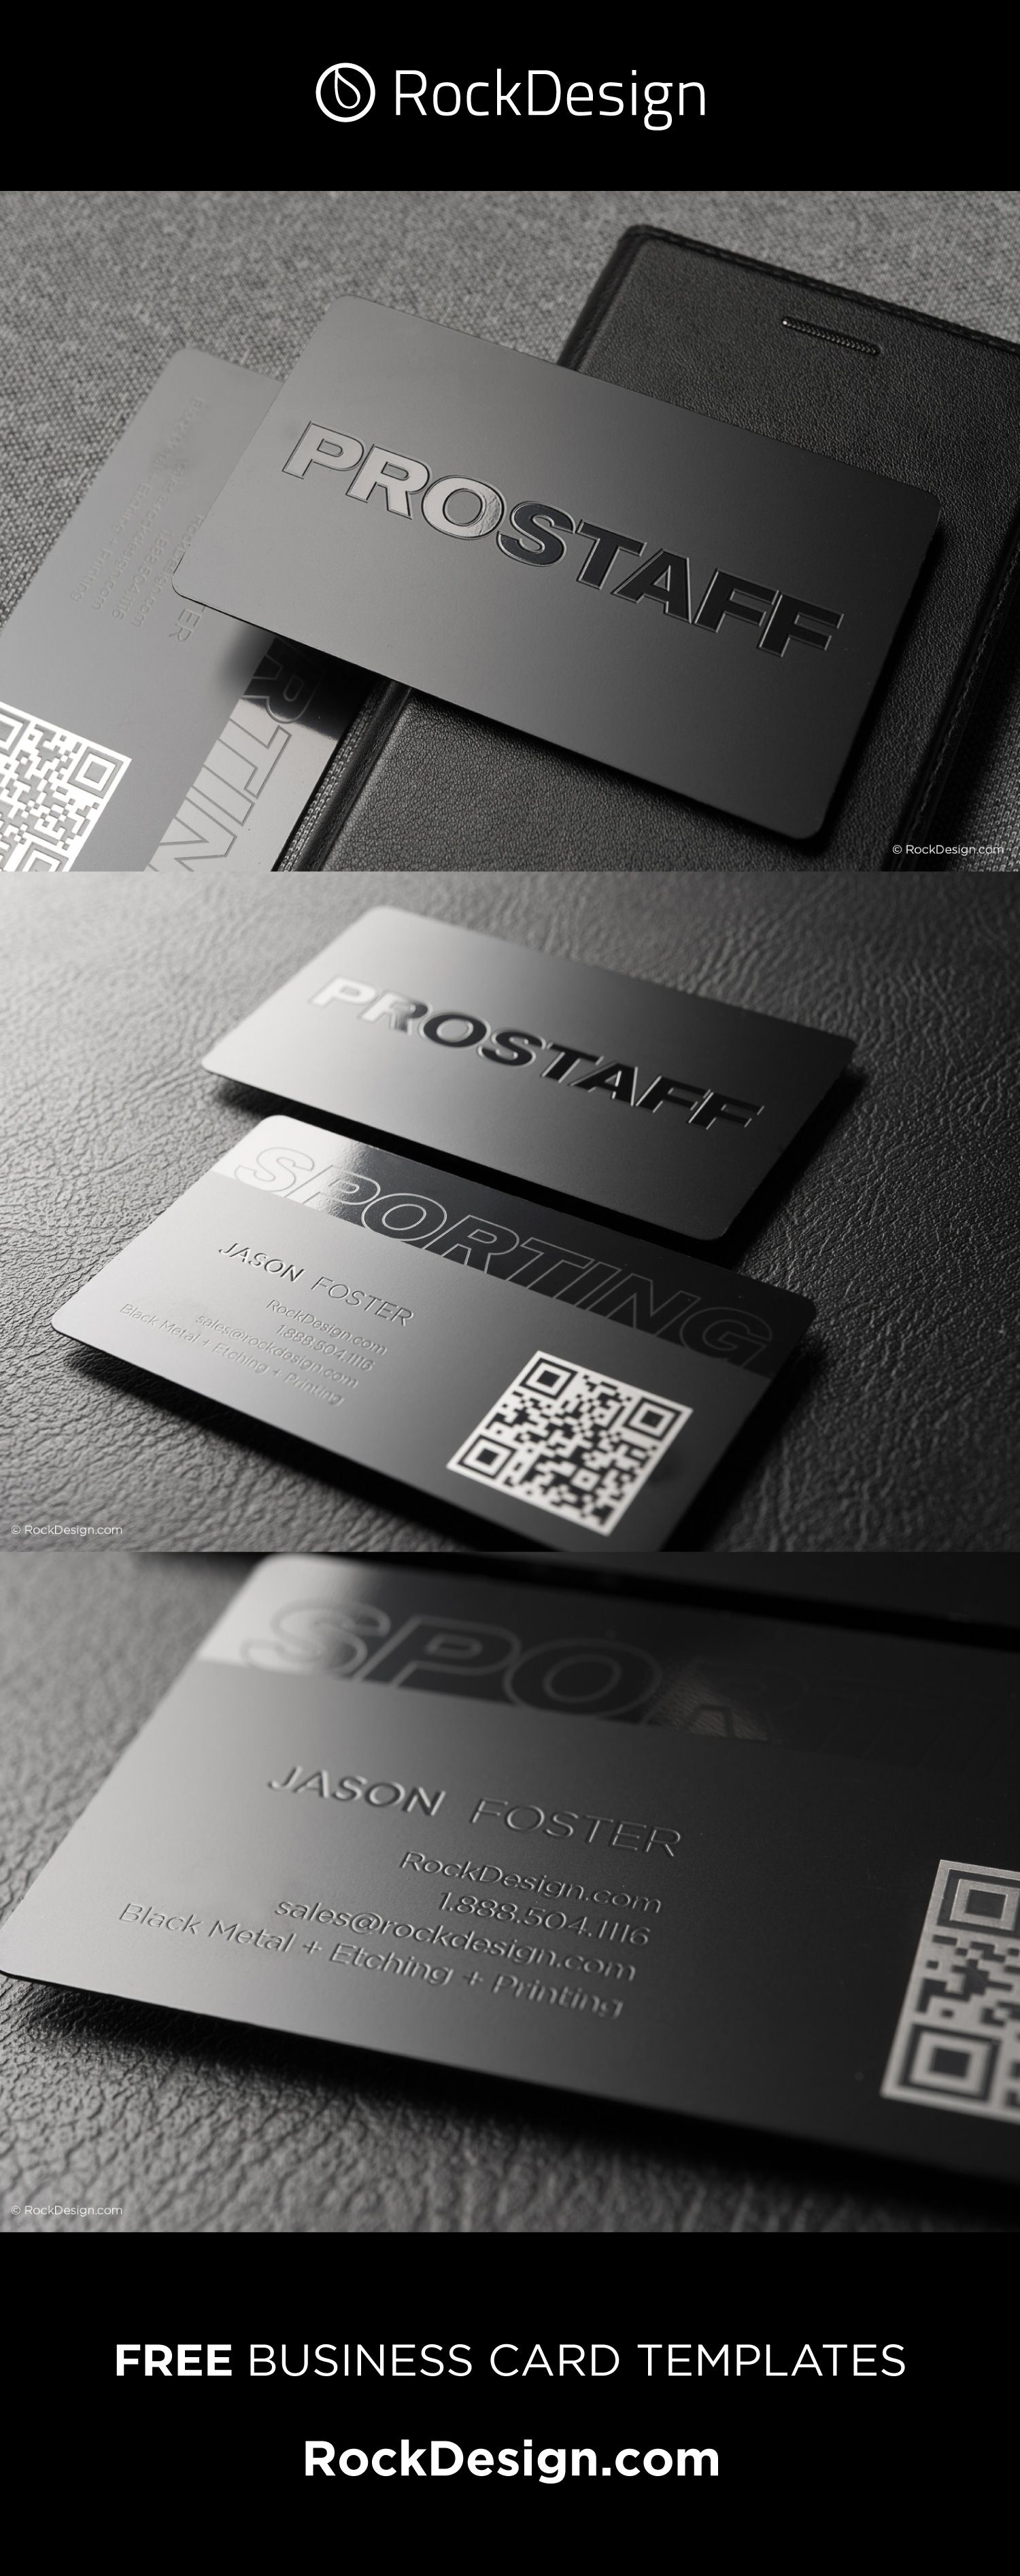 Stylish Black Metal Business Card Template Prostaff Metal Business Cards Business Card Design Black Business Card Design